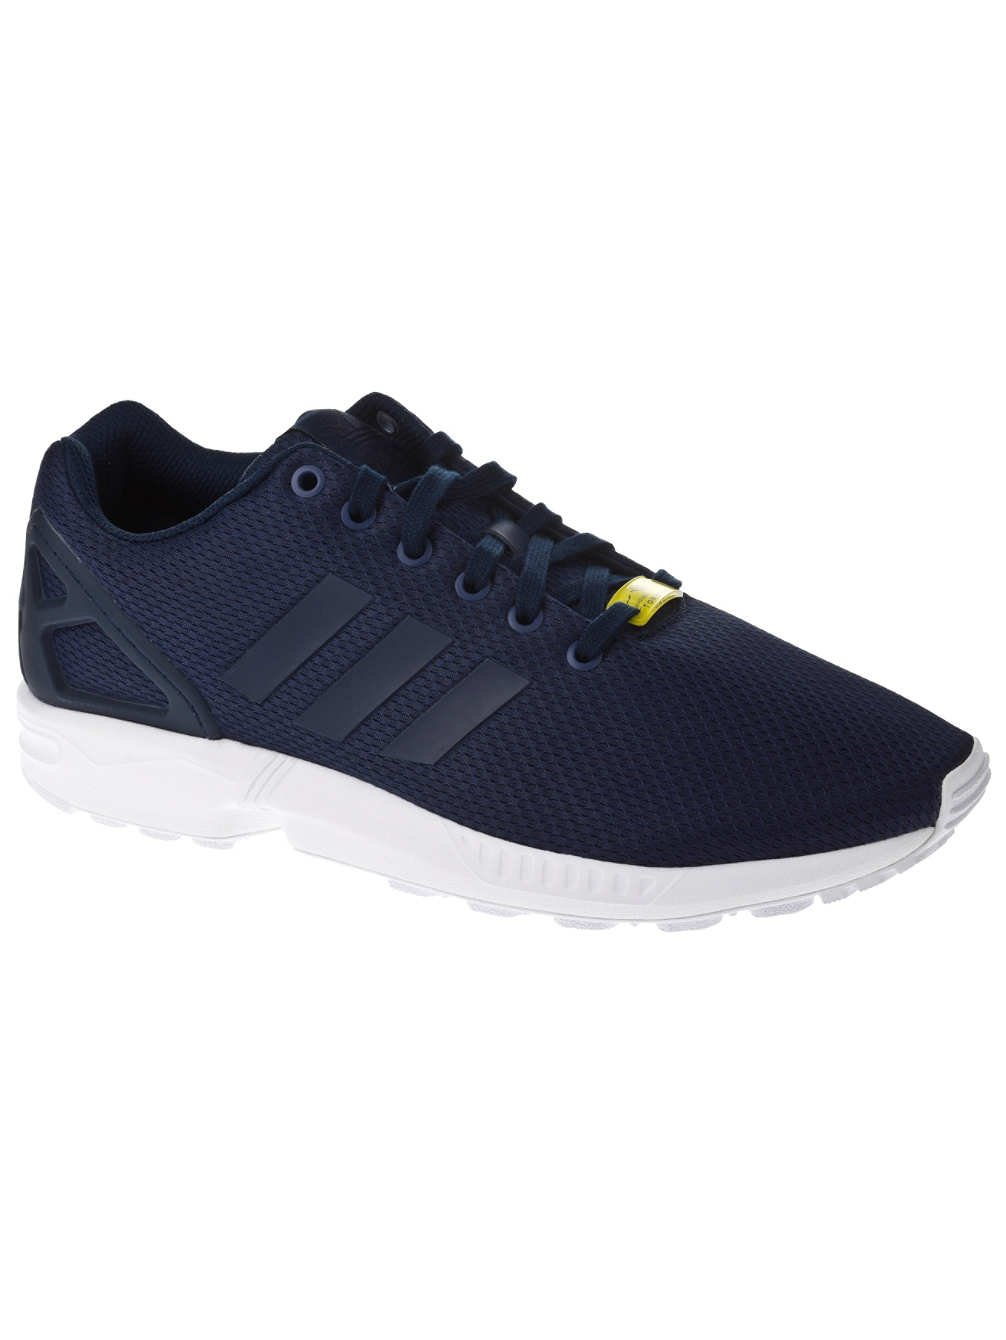 c423bacdf61d Galleon - Adidas ZX Flux Navy White Mens Trainers Size 9 UK